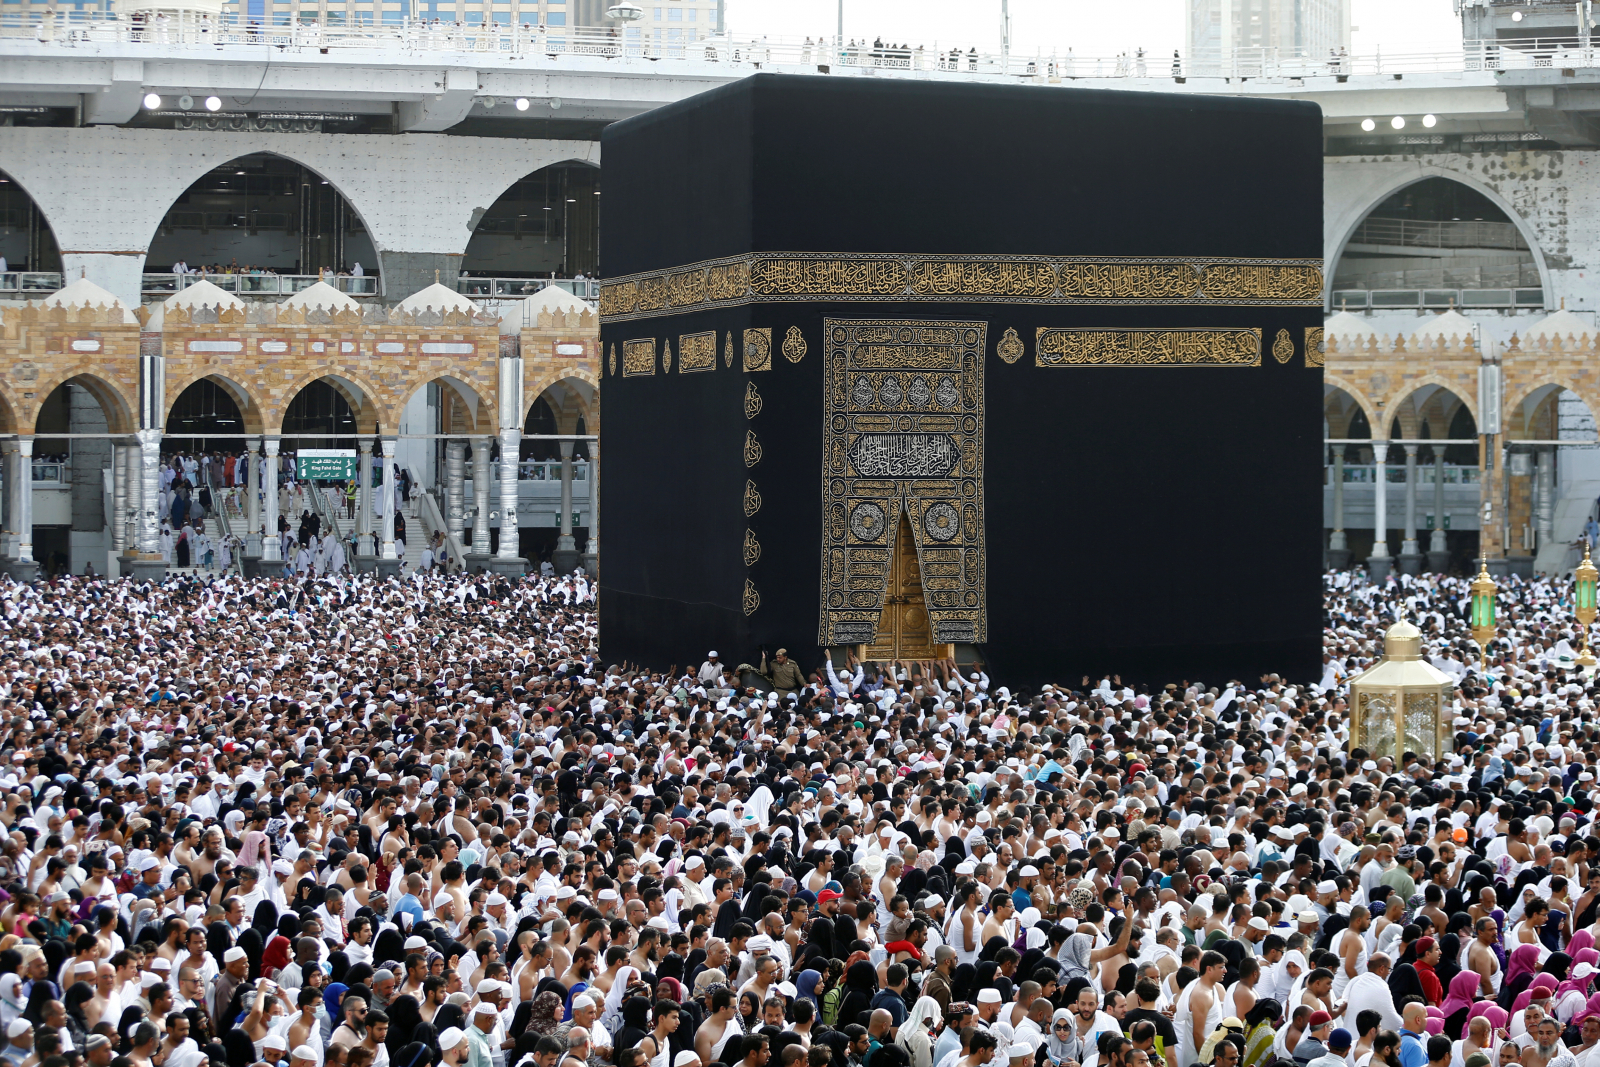 How much does a Mecca pilgrimage cost?